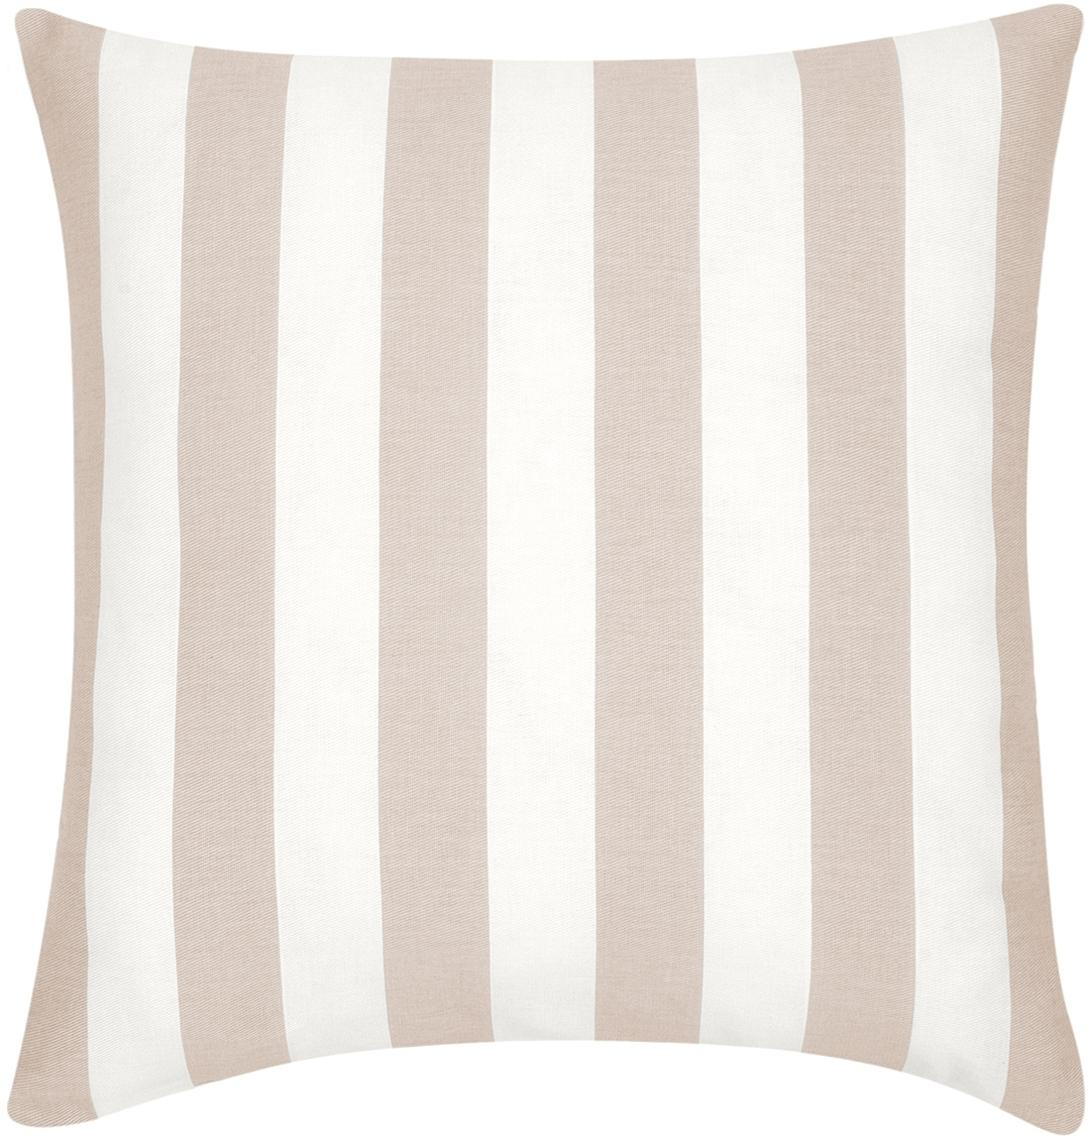 Federa arredo a righe in beige/bianco Timon, Cotone, Taupe, bianco, Larg. 45 x Lung. 45 cm